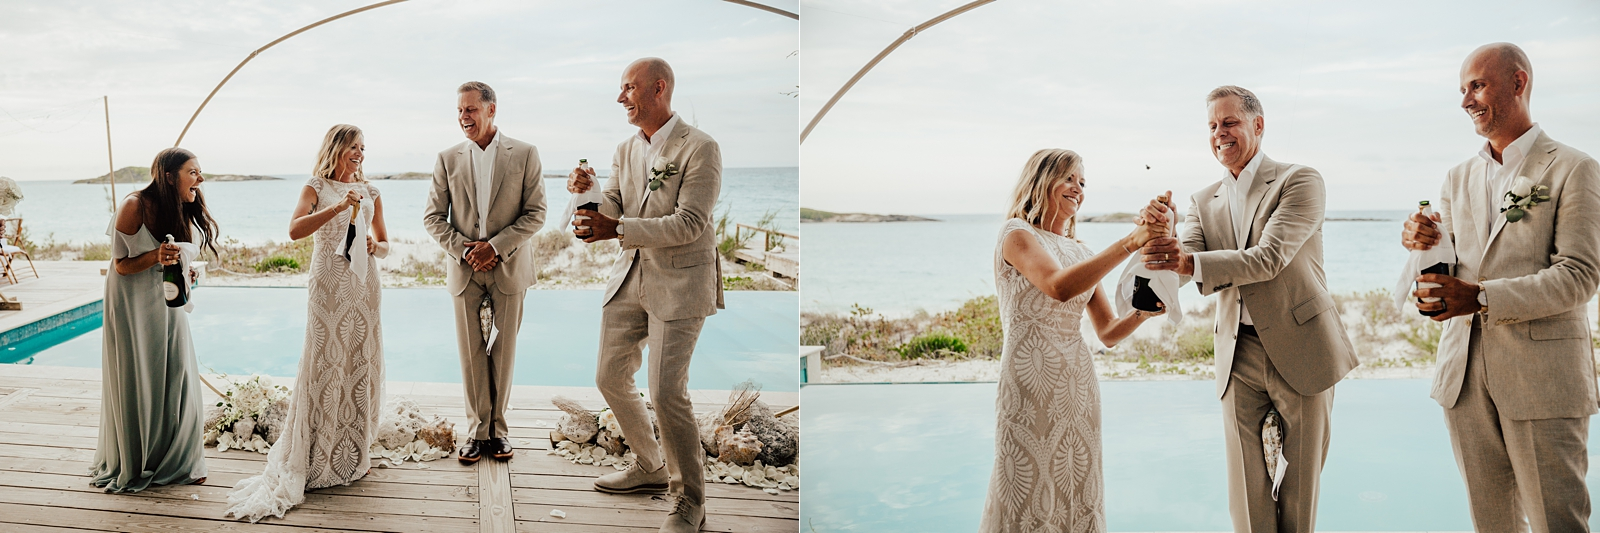 Jenni & Andrew Intimate Beach Destination Wedding in Little Exuma, Bahamas_0513.jpg